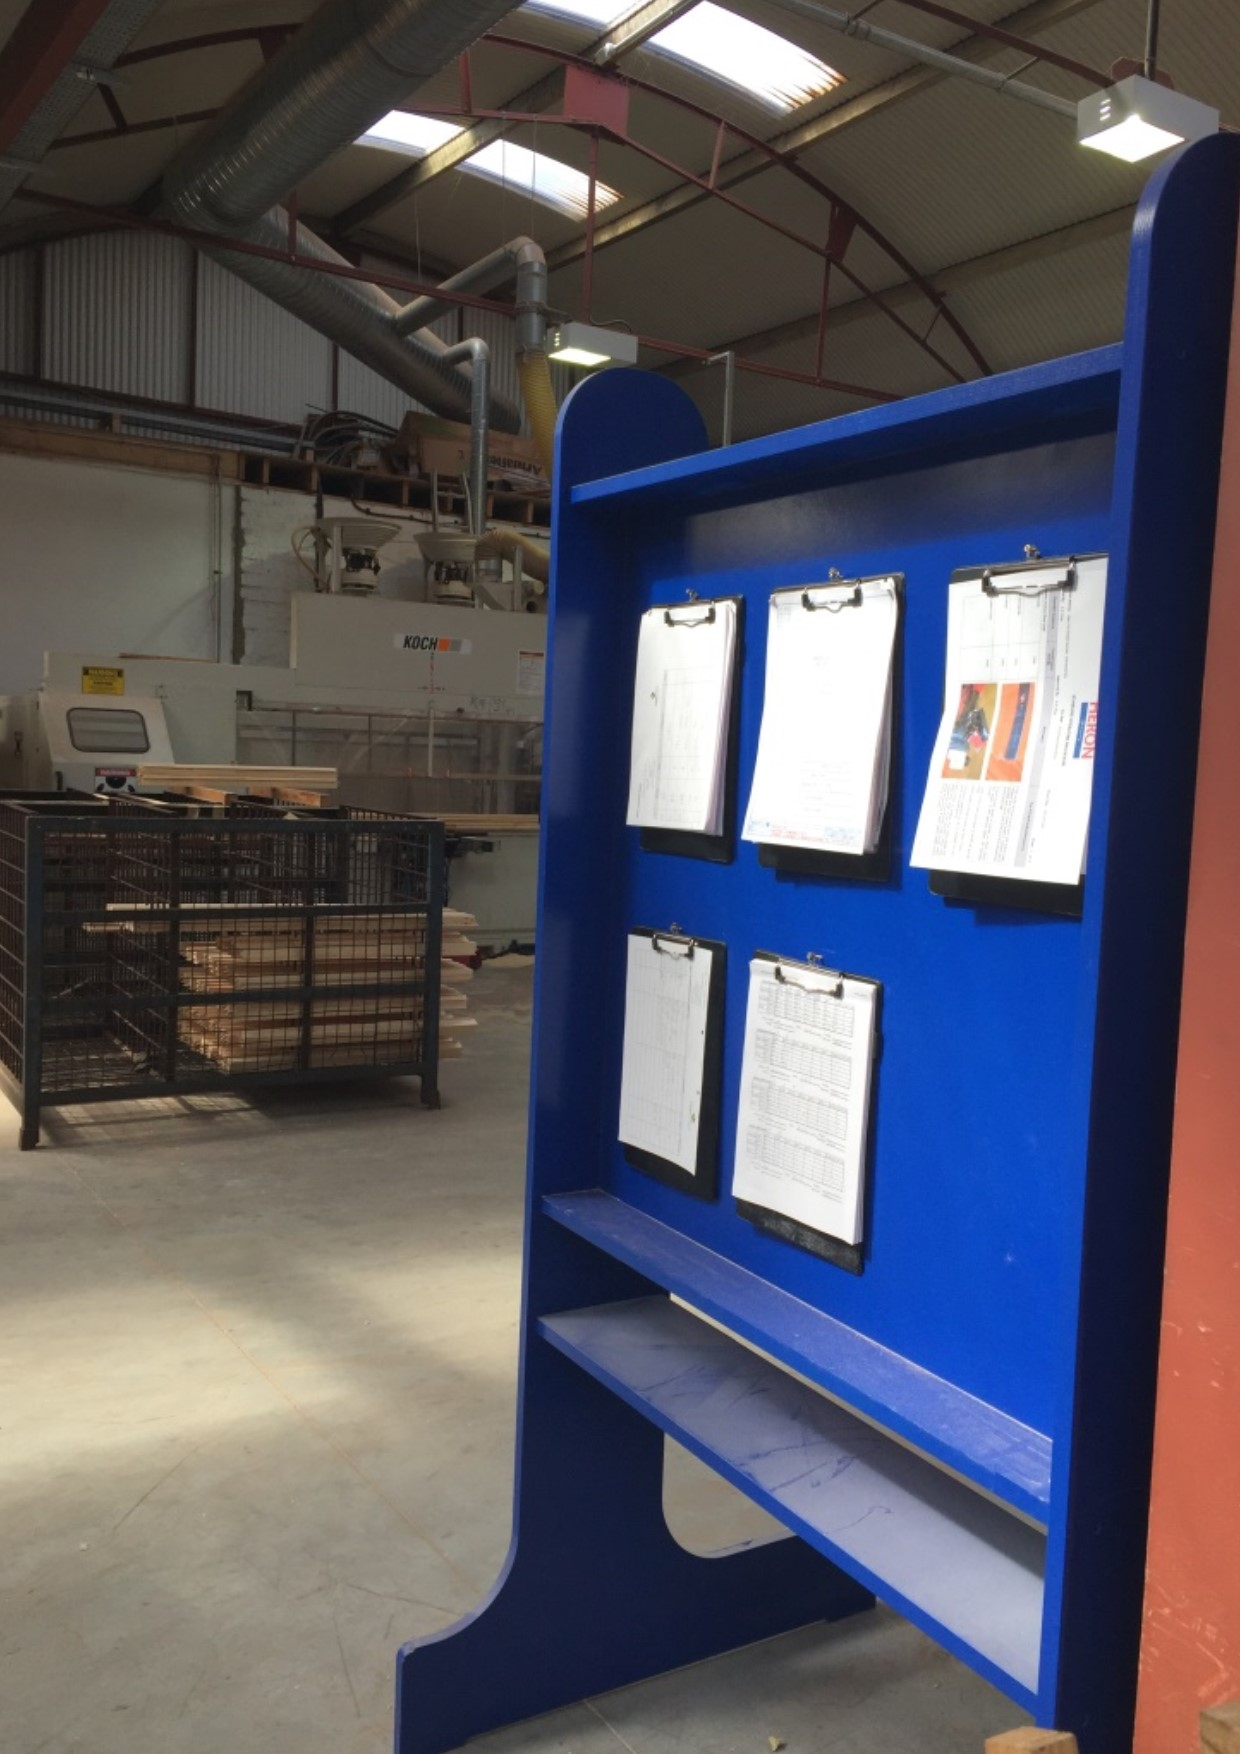 Case Study: Heron Joinery – Improvement projects taking place within new factory site